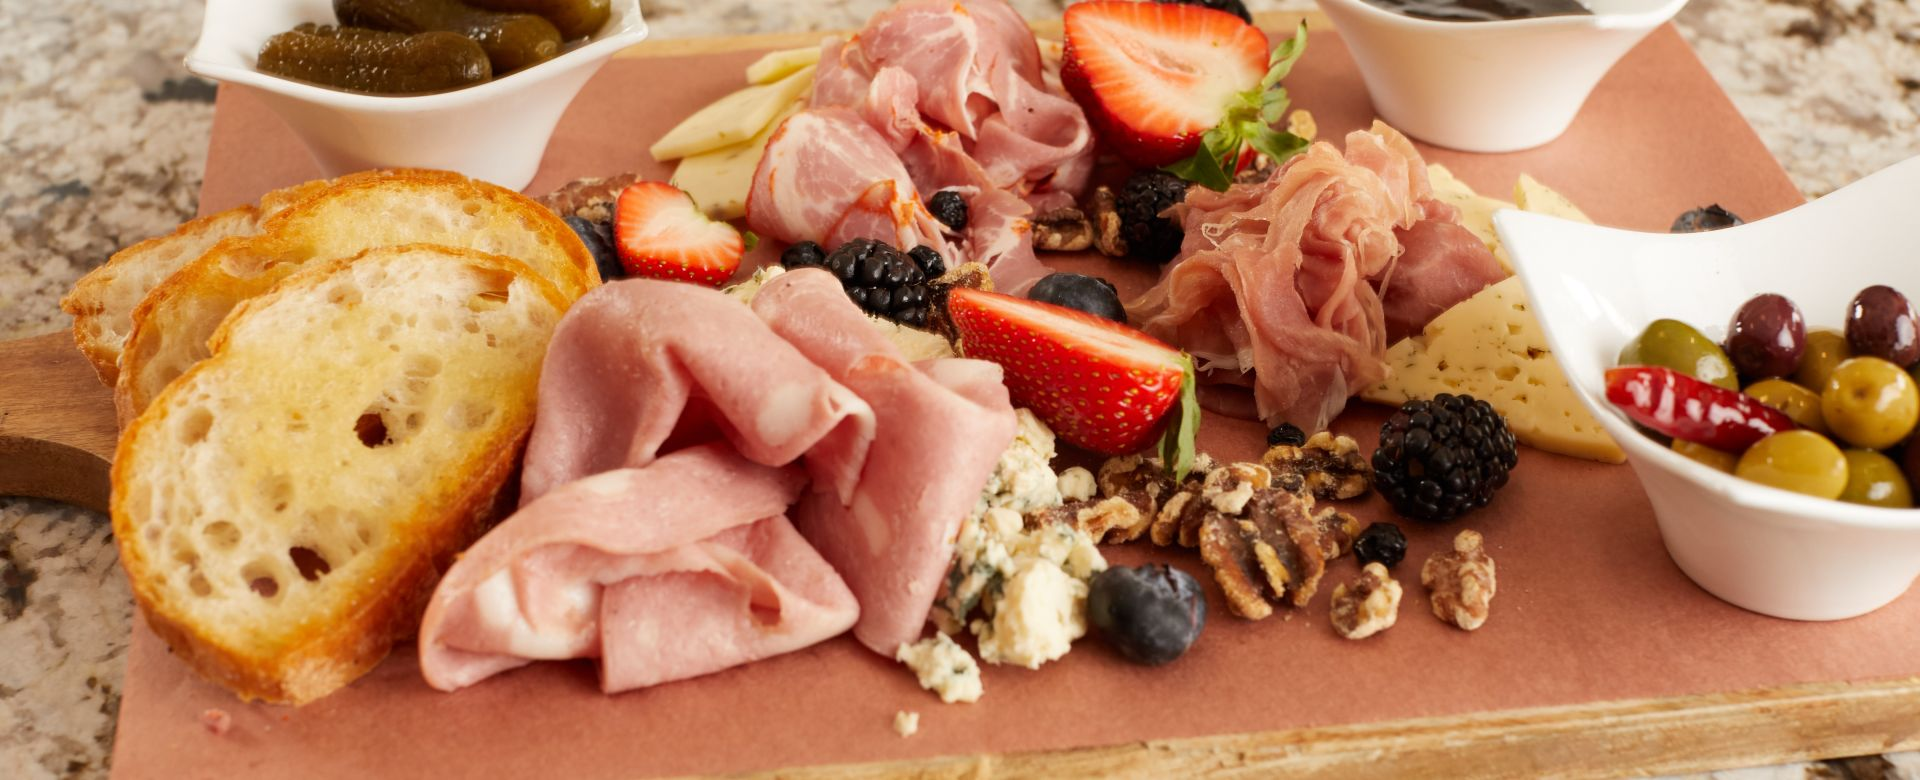 A bread, prosciutto, fruit and cheese tray.